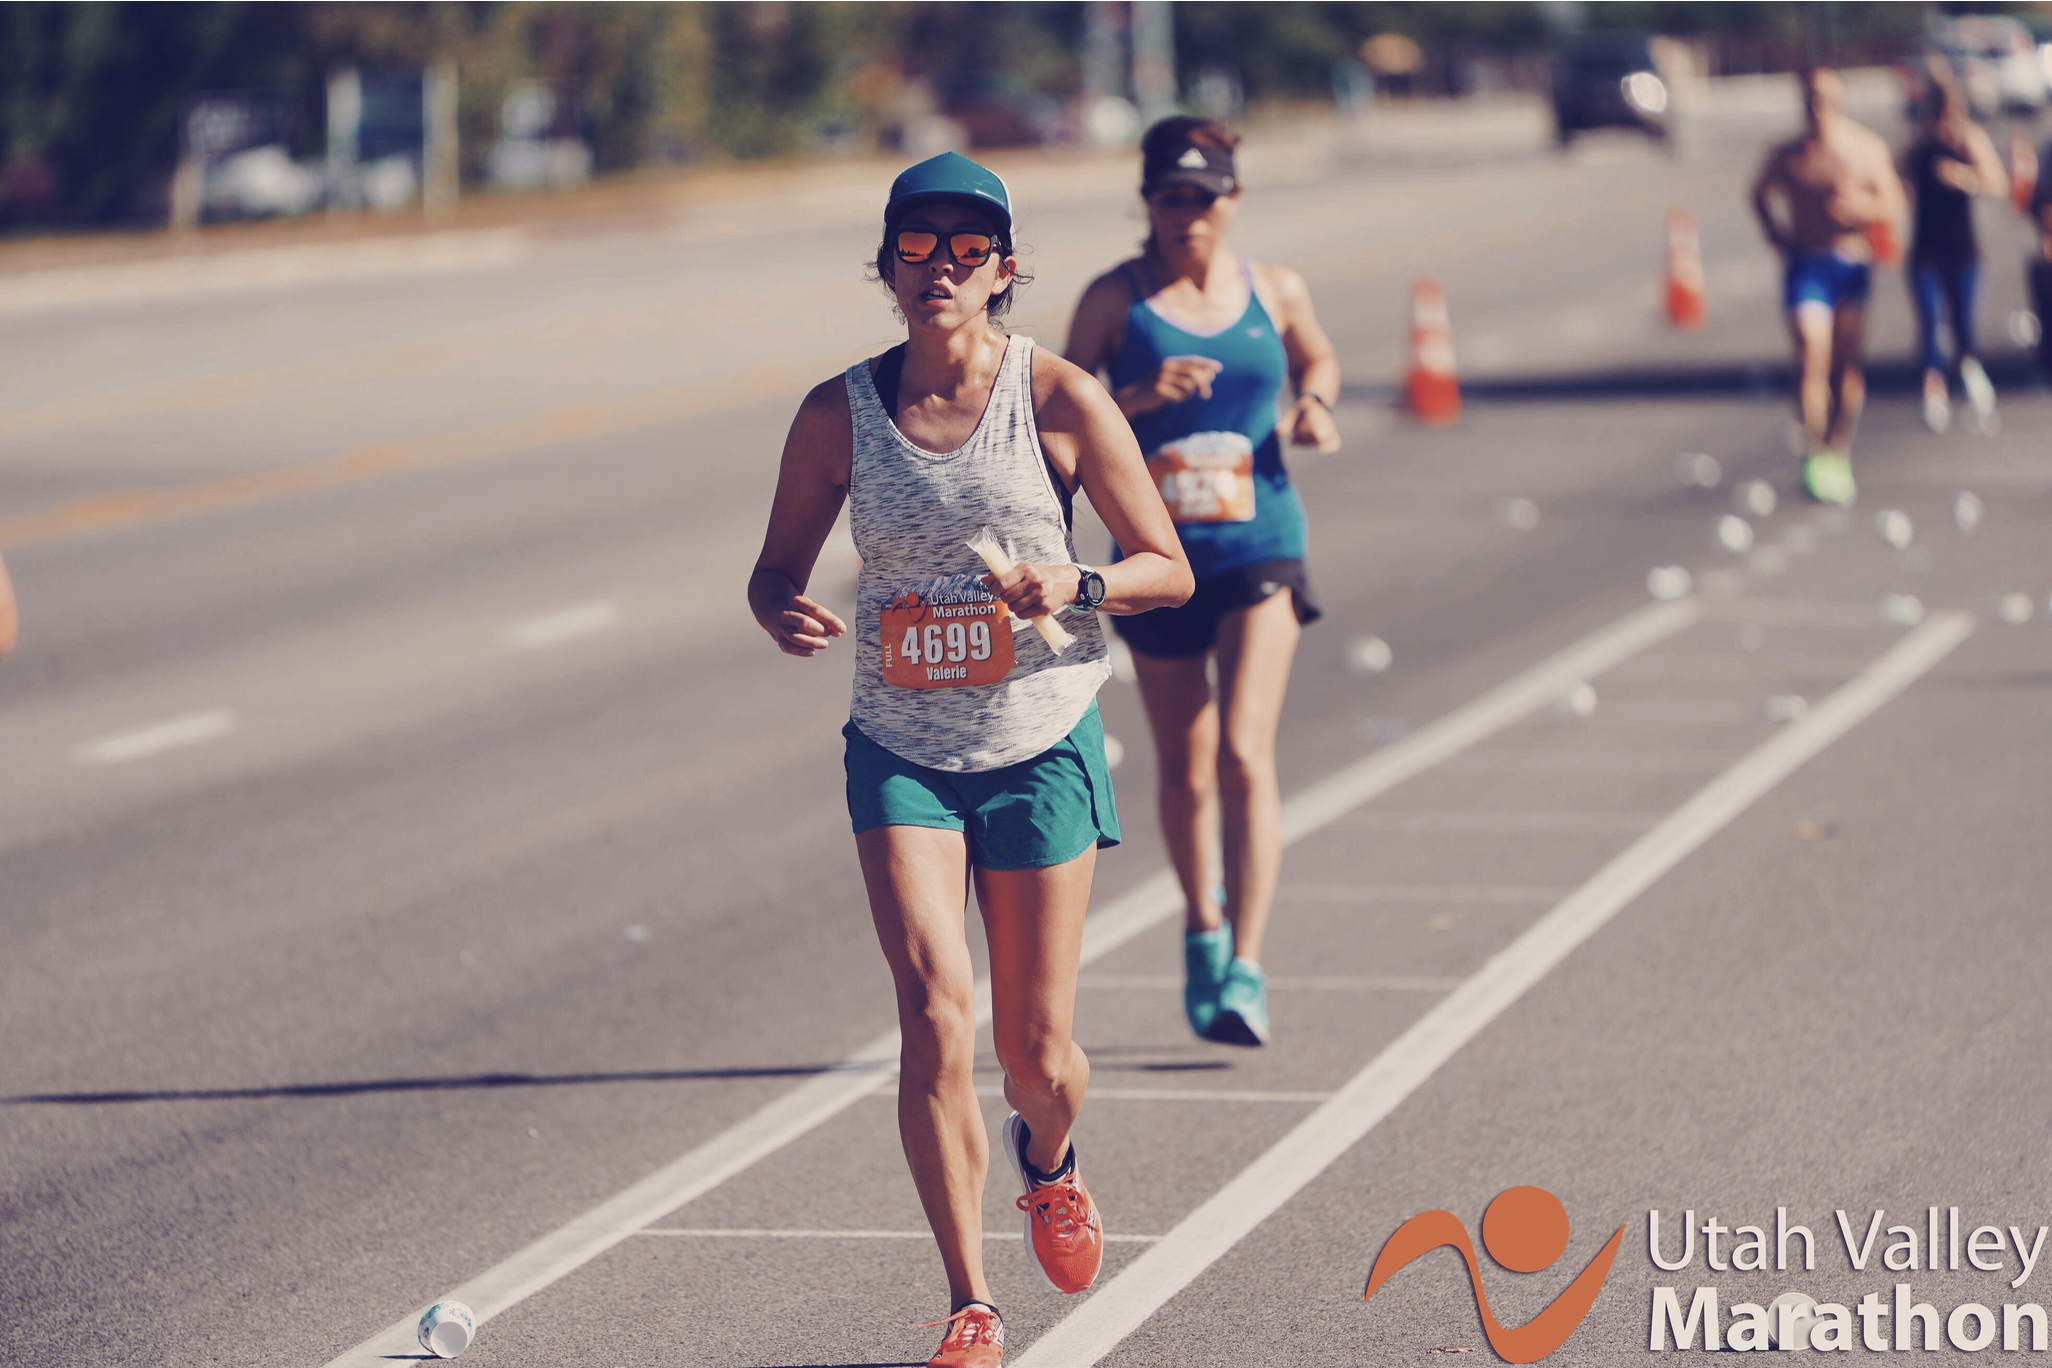 23 miles in—smelling of campfire, covered in salt, chewing on a grape otter pop. Photo: Utah Valley Marathon